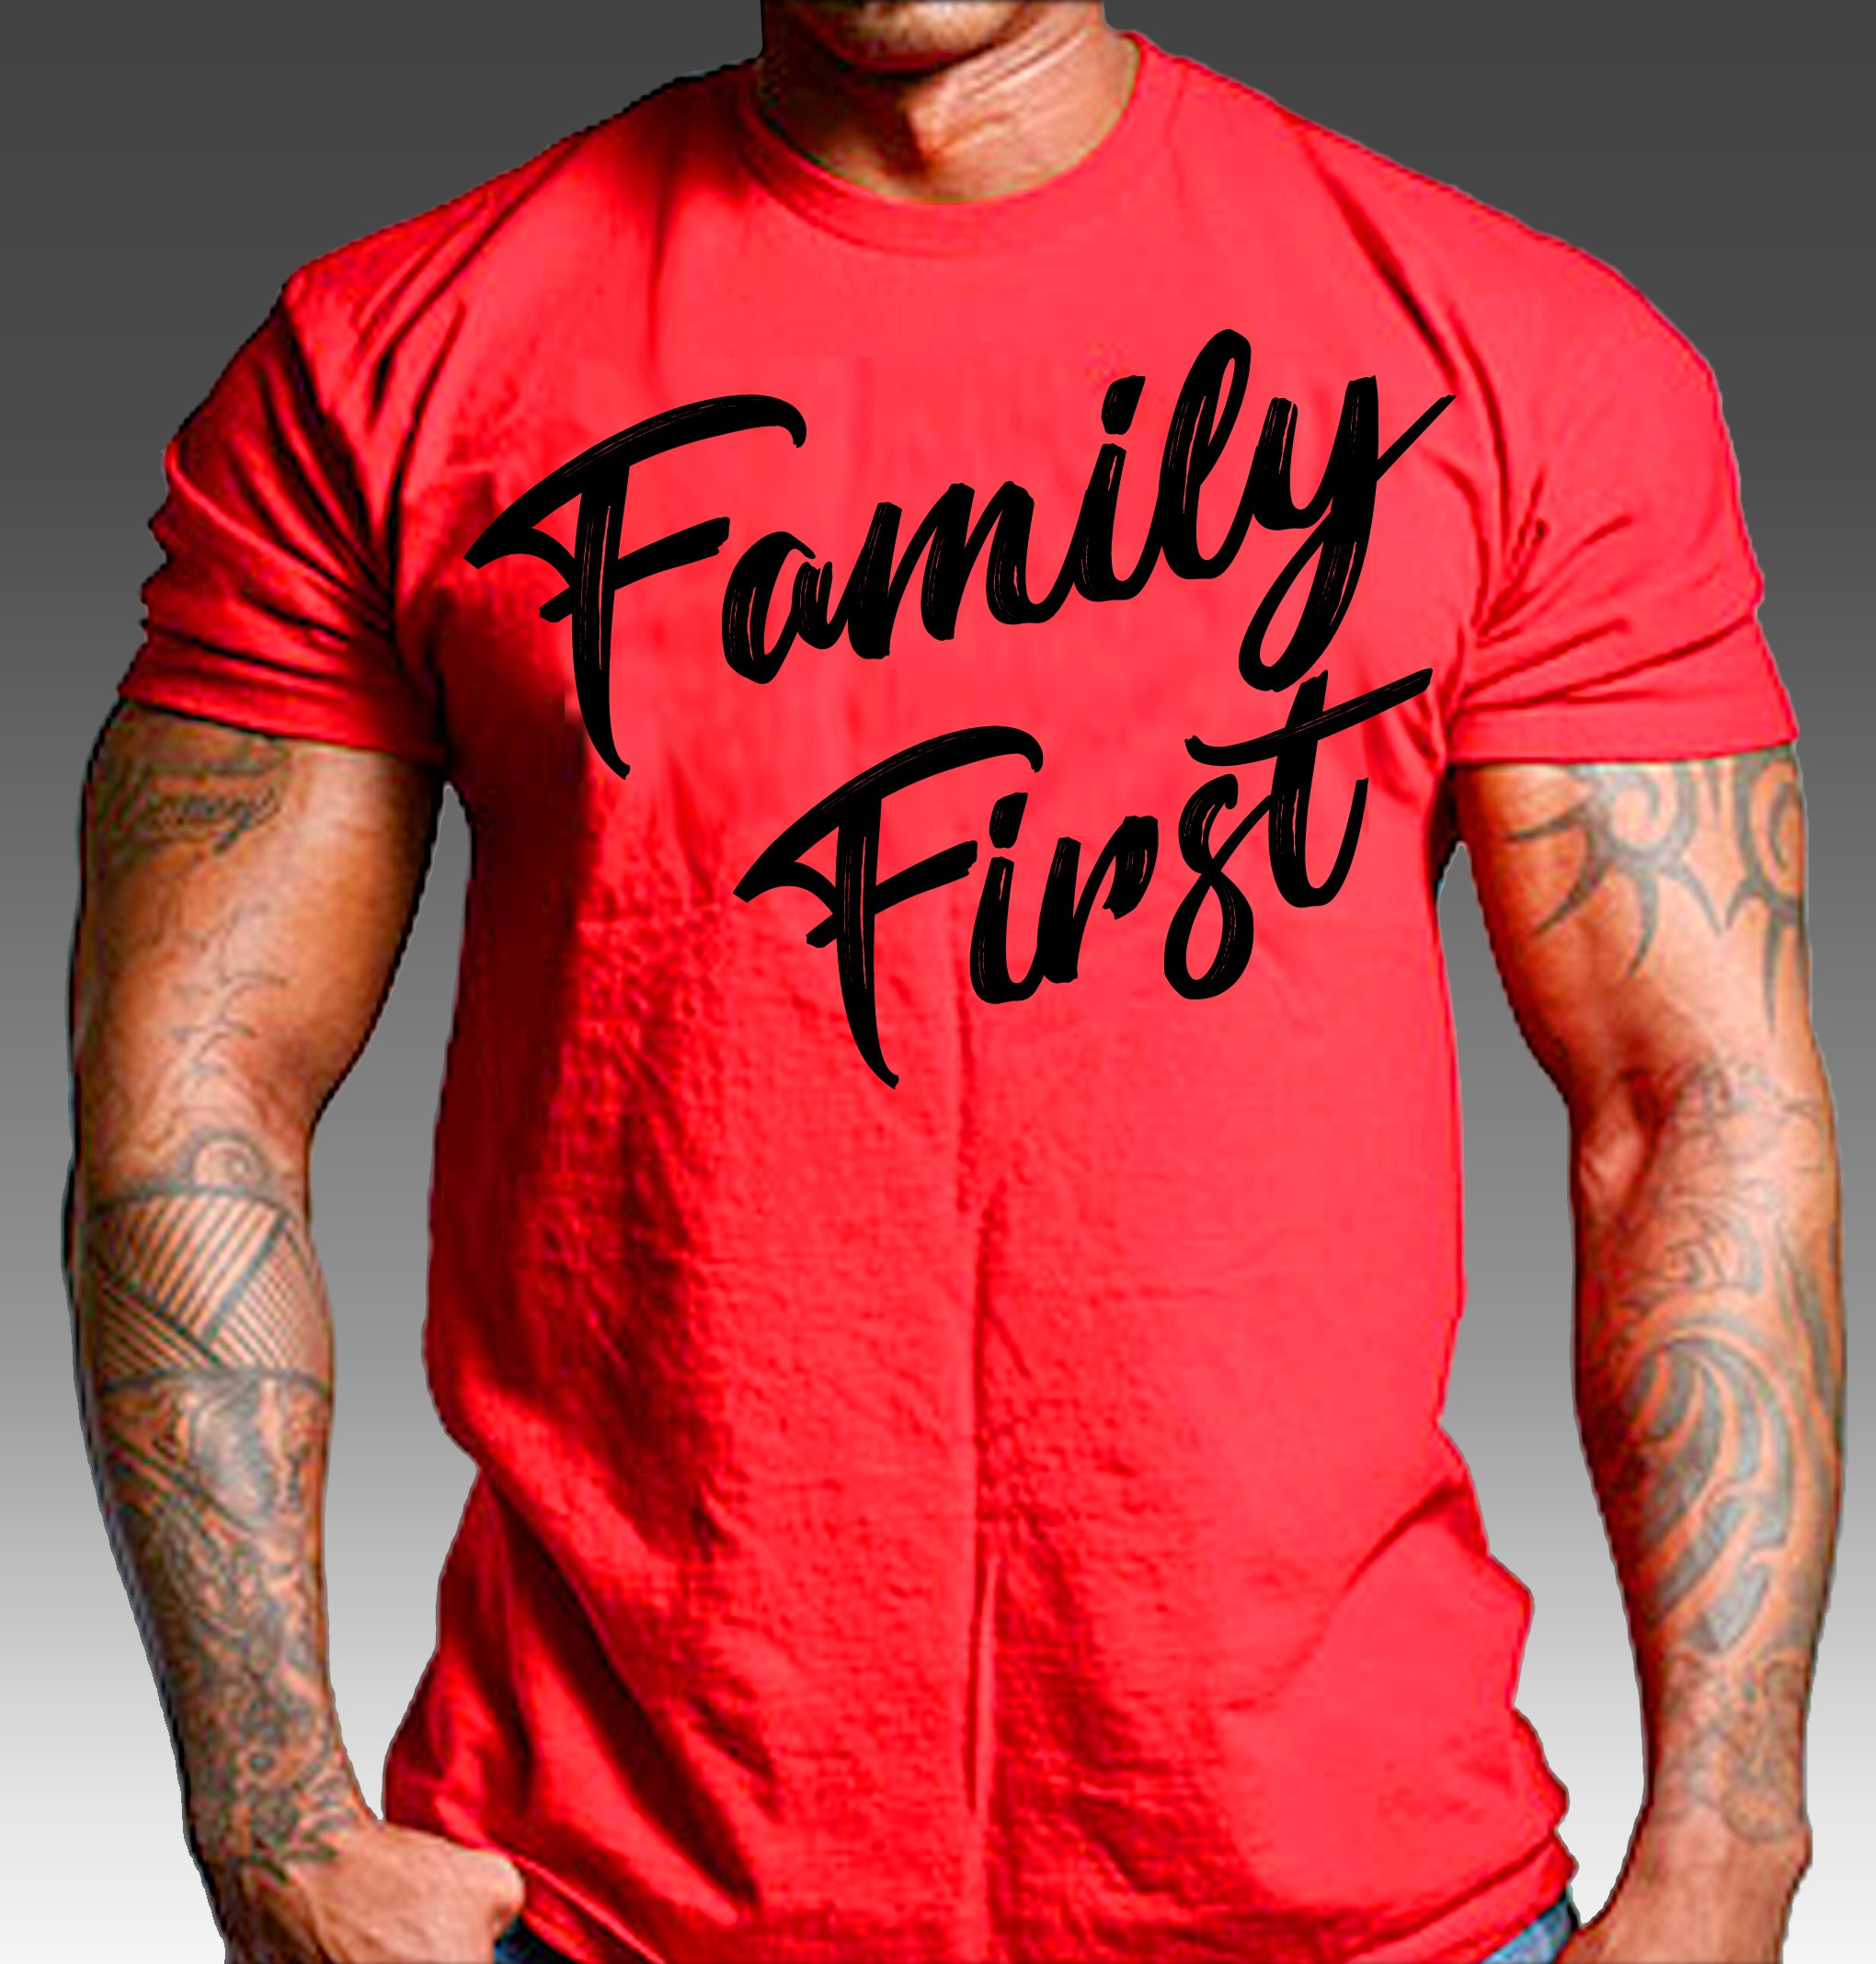 red t shirt with black print